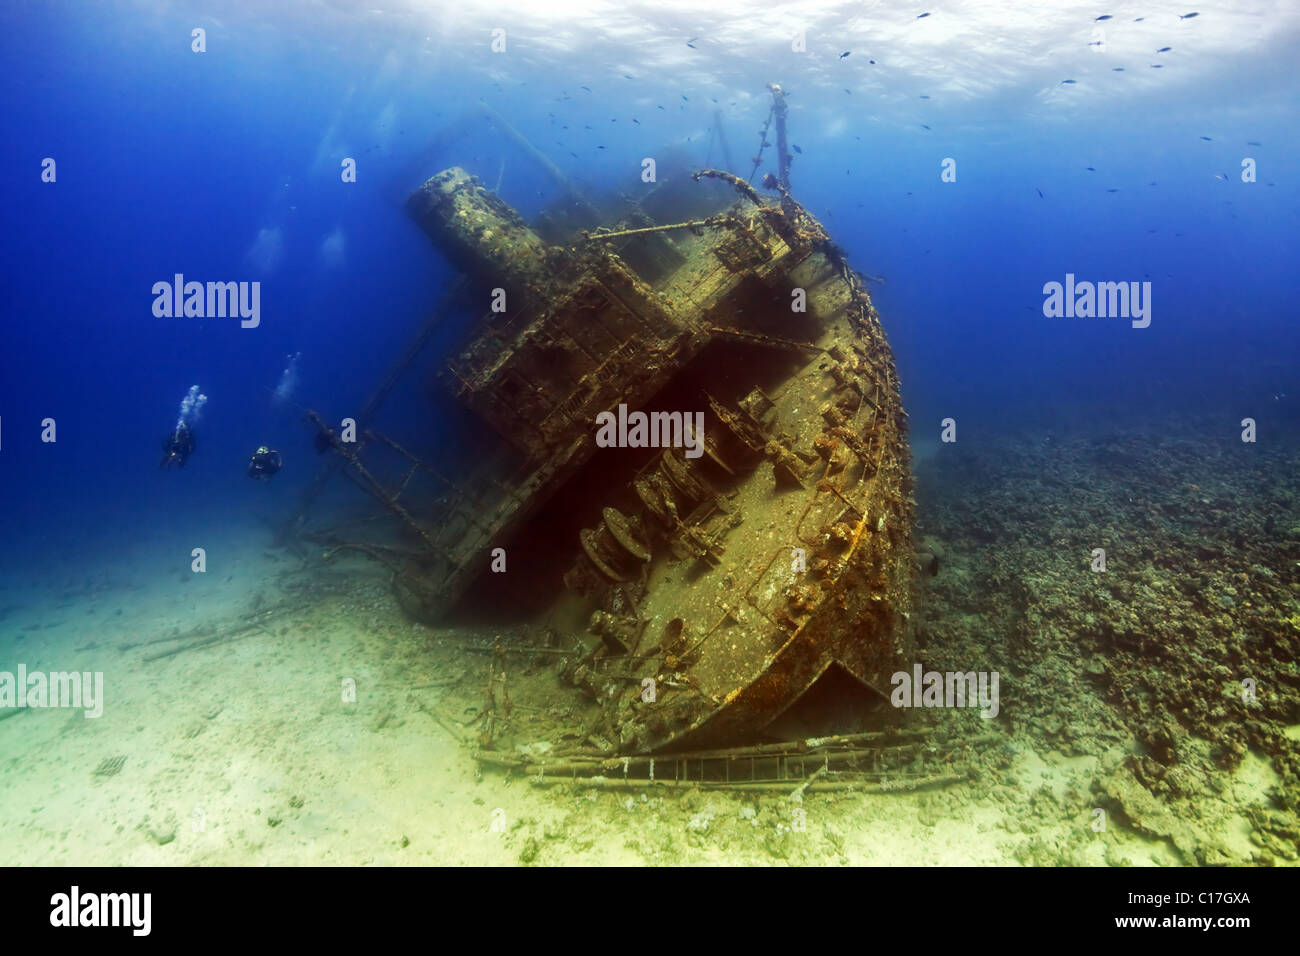 Scuba divers approach the stern of the Giannis D shipwreck at Sha'ab Abu Nuhas in the Red Sea Straits of Gubal, - Stock Image